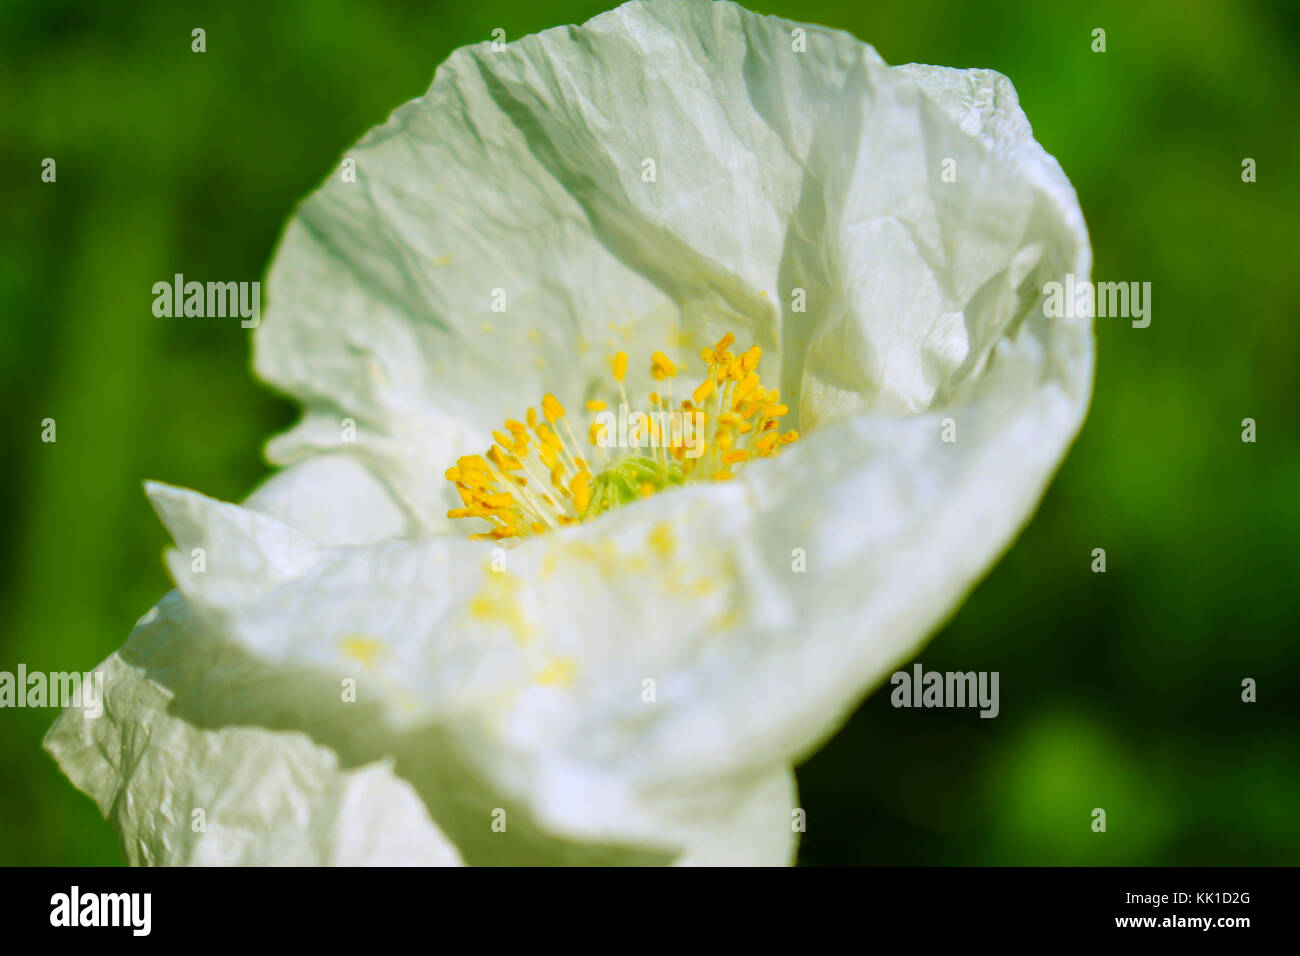 A simple close up picture of a rare and beautiful white poppy plant. Stock Photo